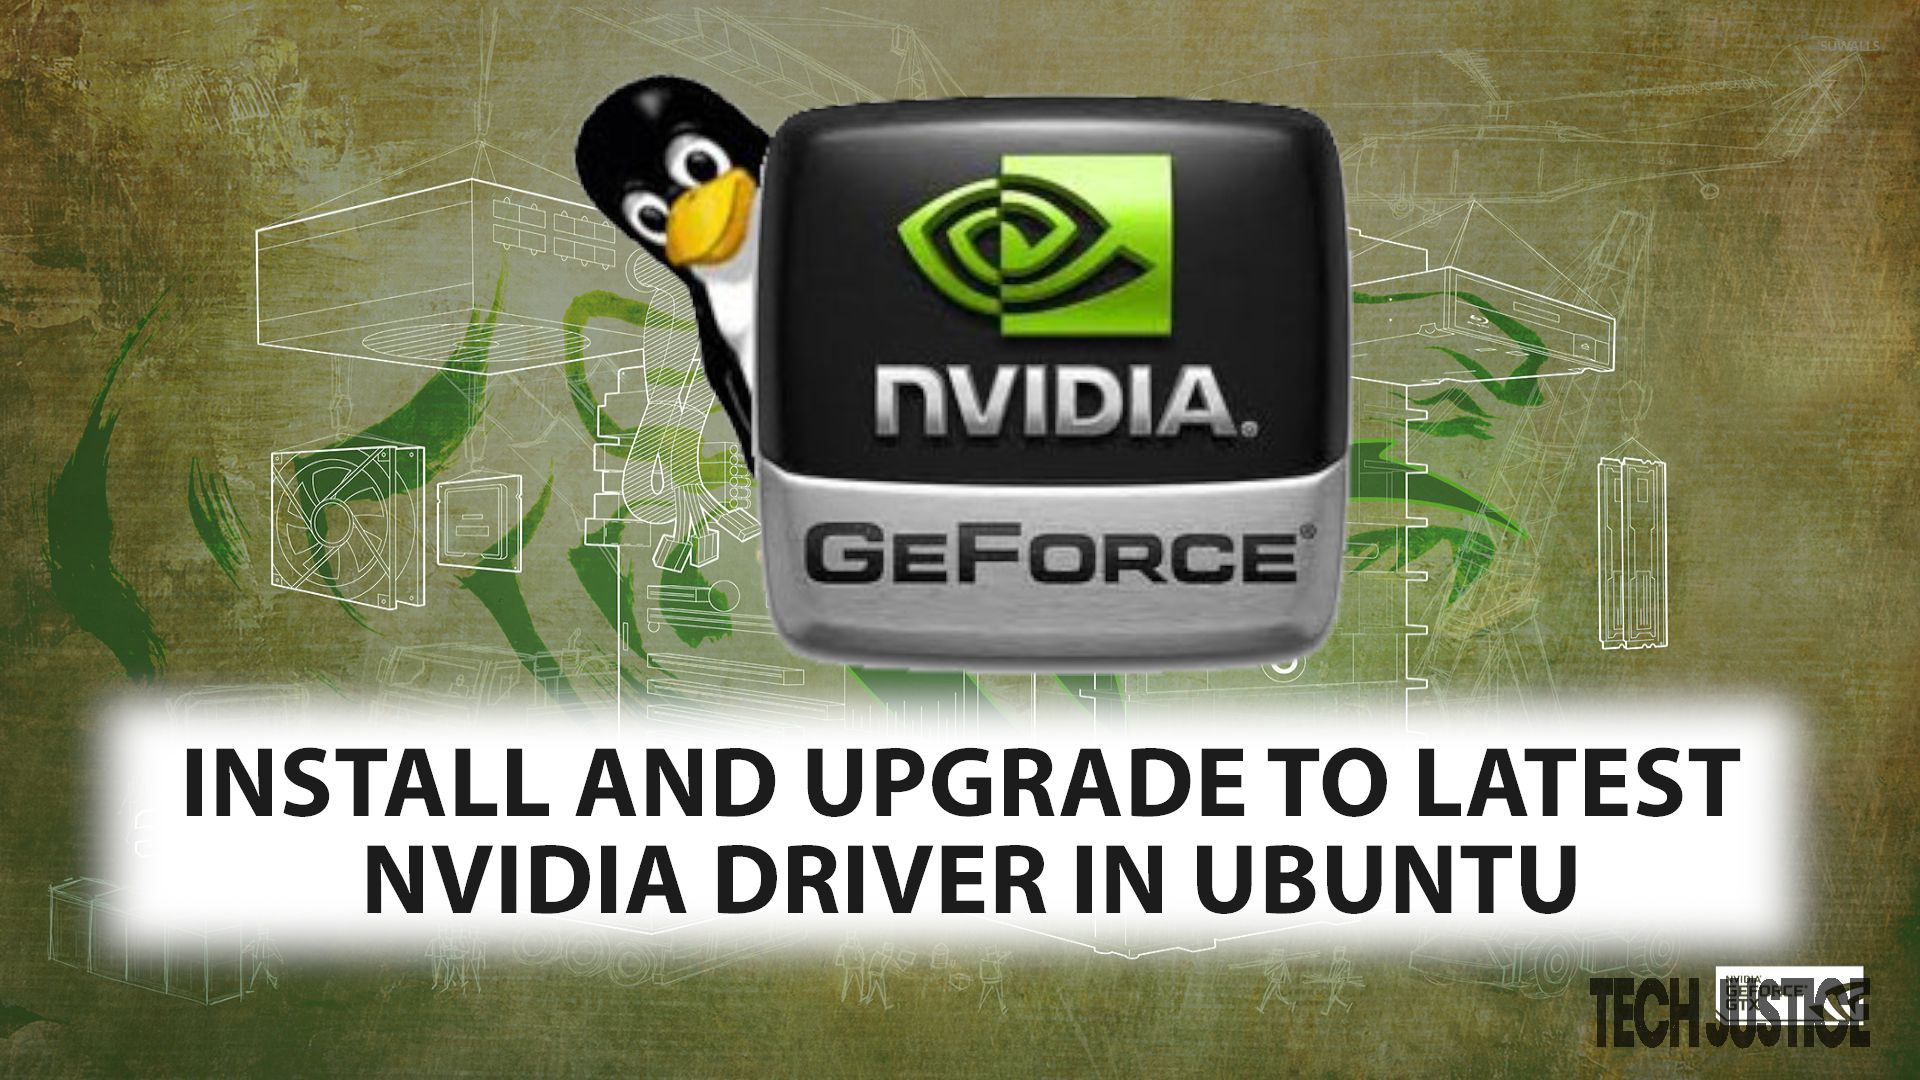 install nvidia driver - Tech Justice